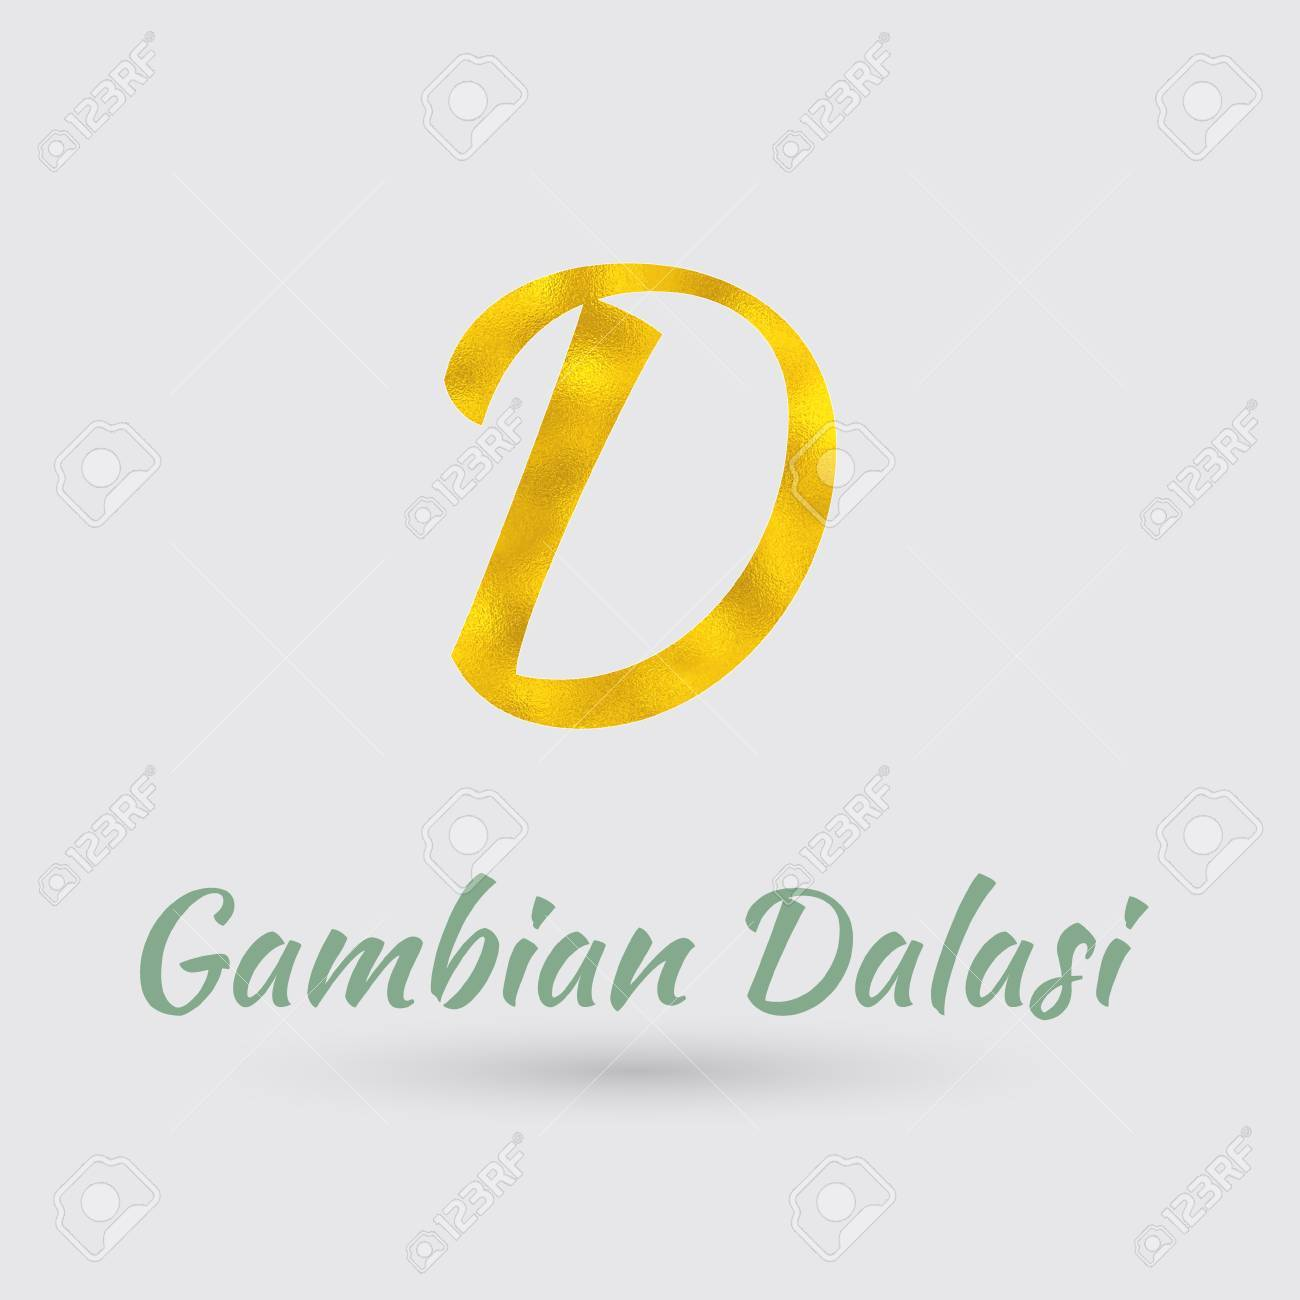 Symbol Of The Gambian Dalasi Currency With Golden Texture Text